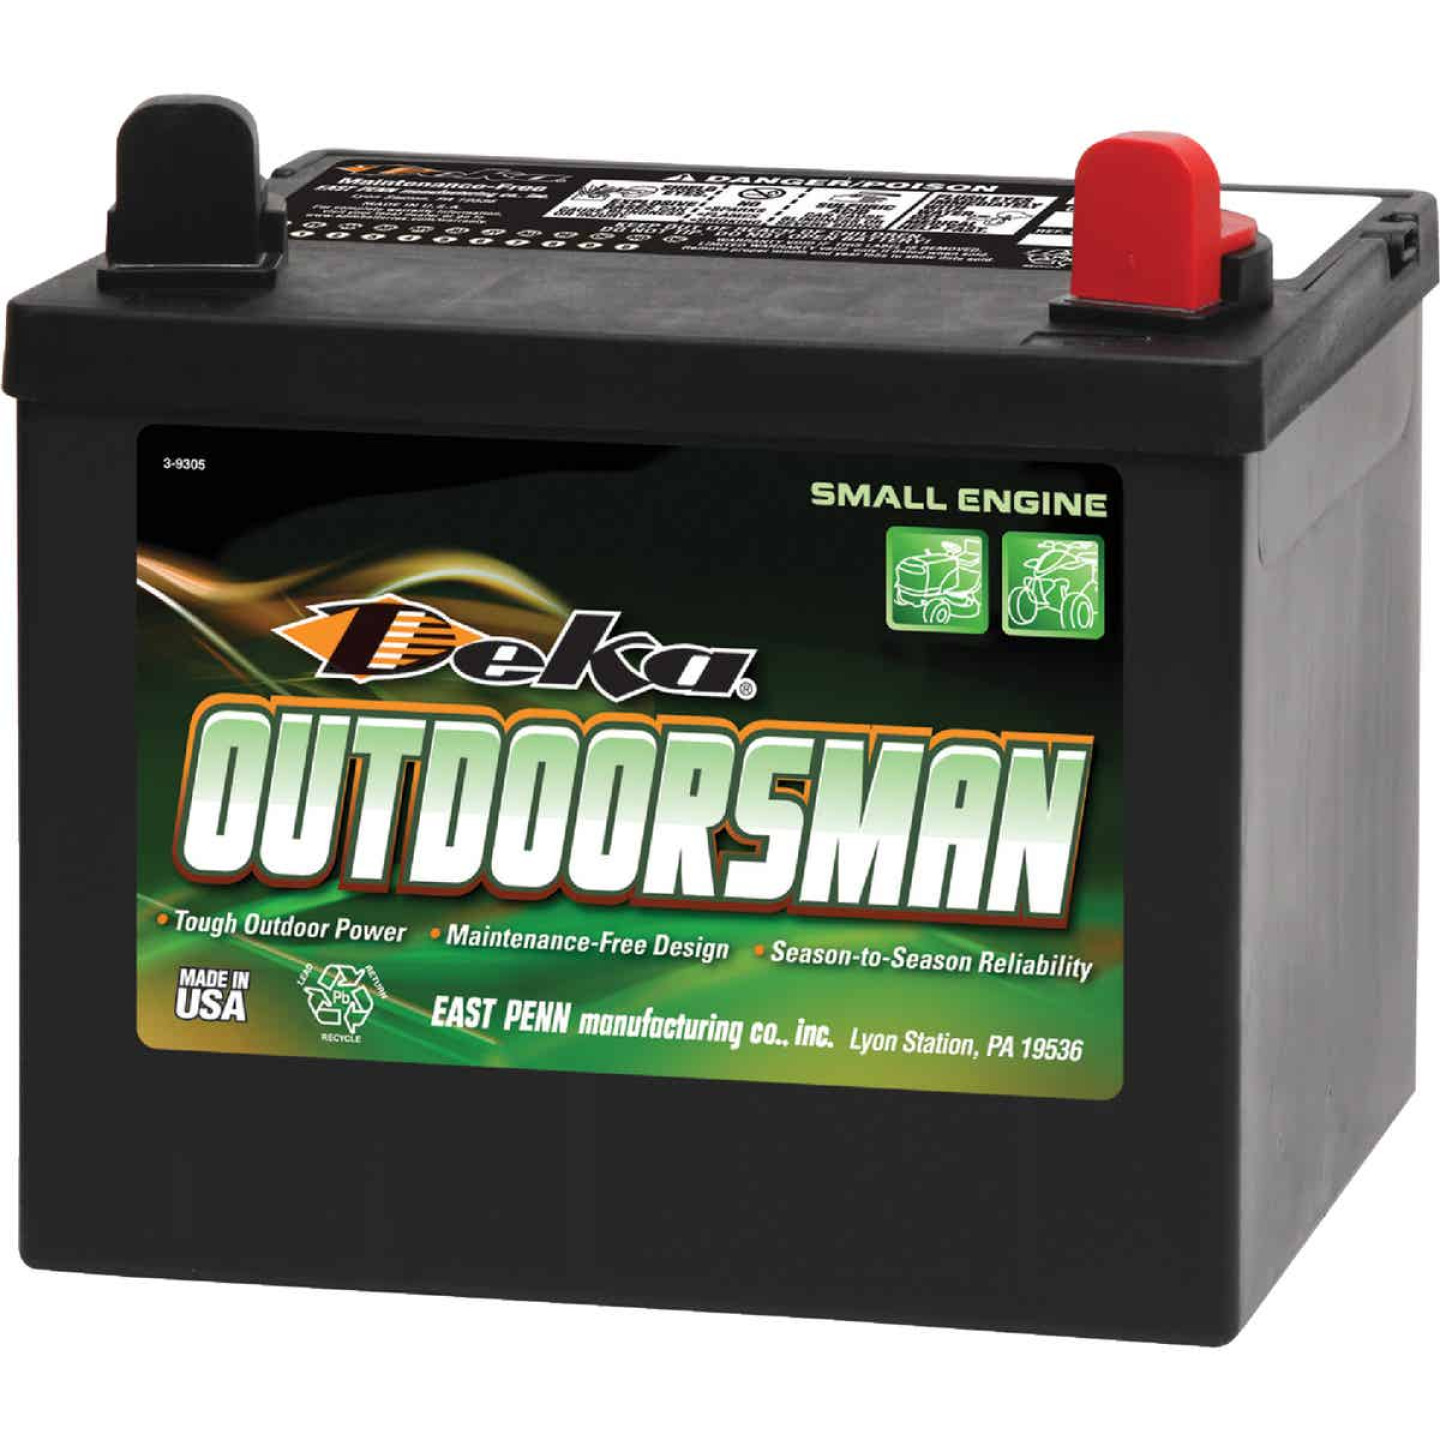 Deka Outdoorsman 12-Volt Lawn & Garden 300 CCA Small Engine Battery, Right Front Positive Terminal Image 1